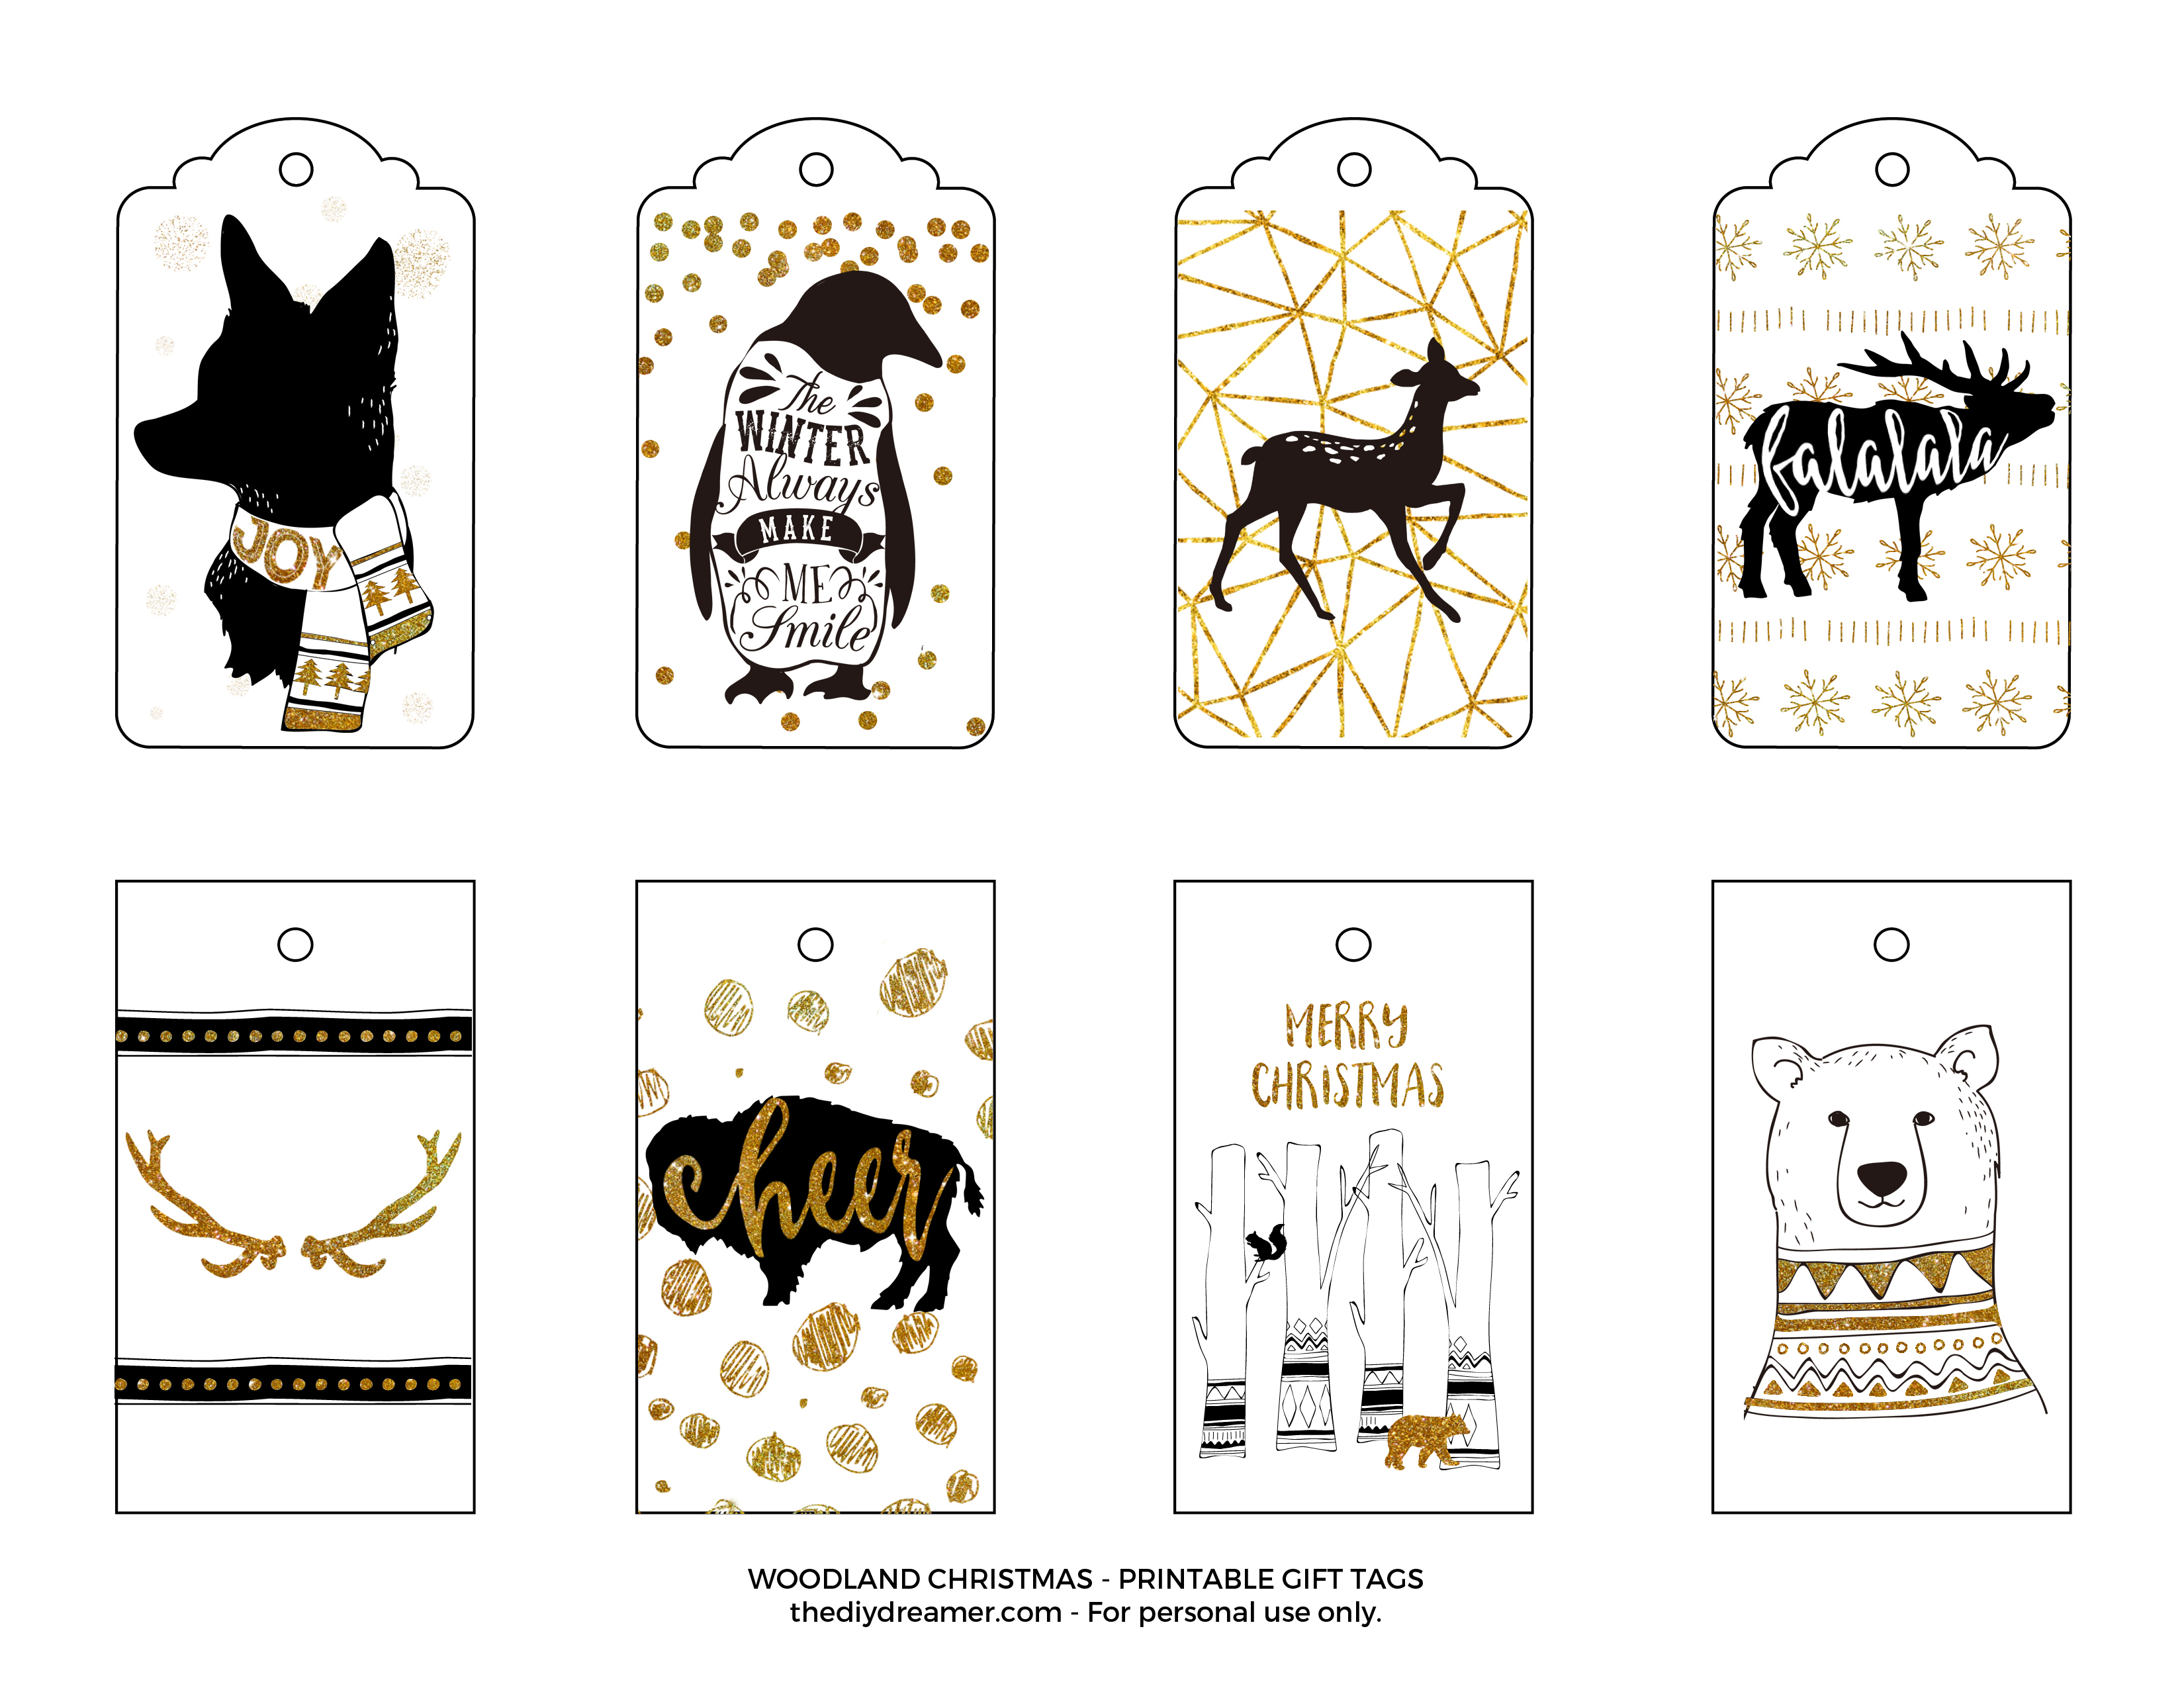 graphic relating to Printable Gift Tages named Woodland Xmas Printable Present Tags - Black and Gold